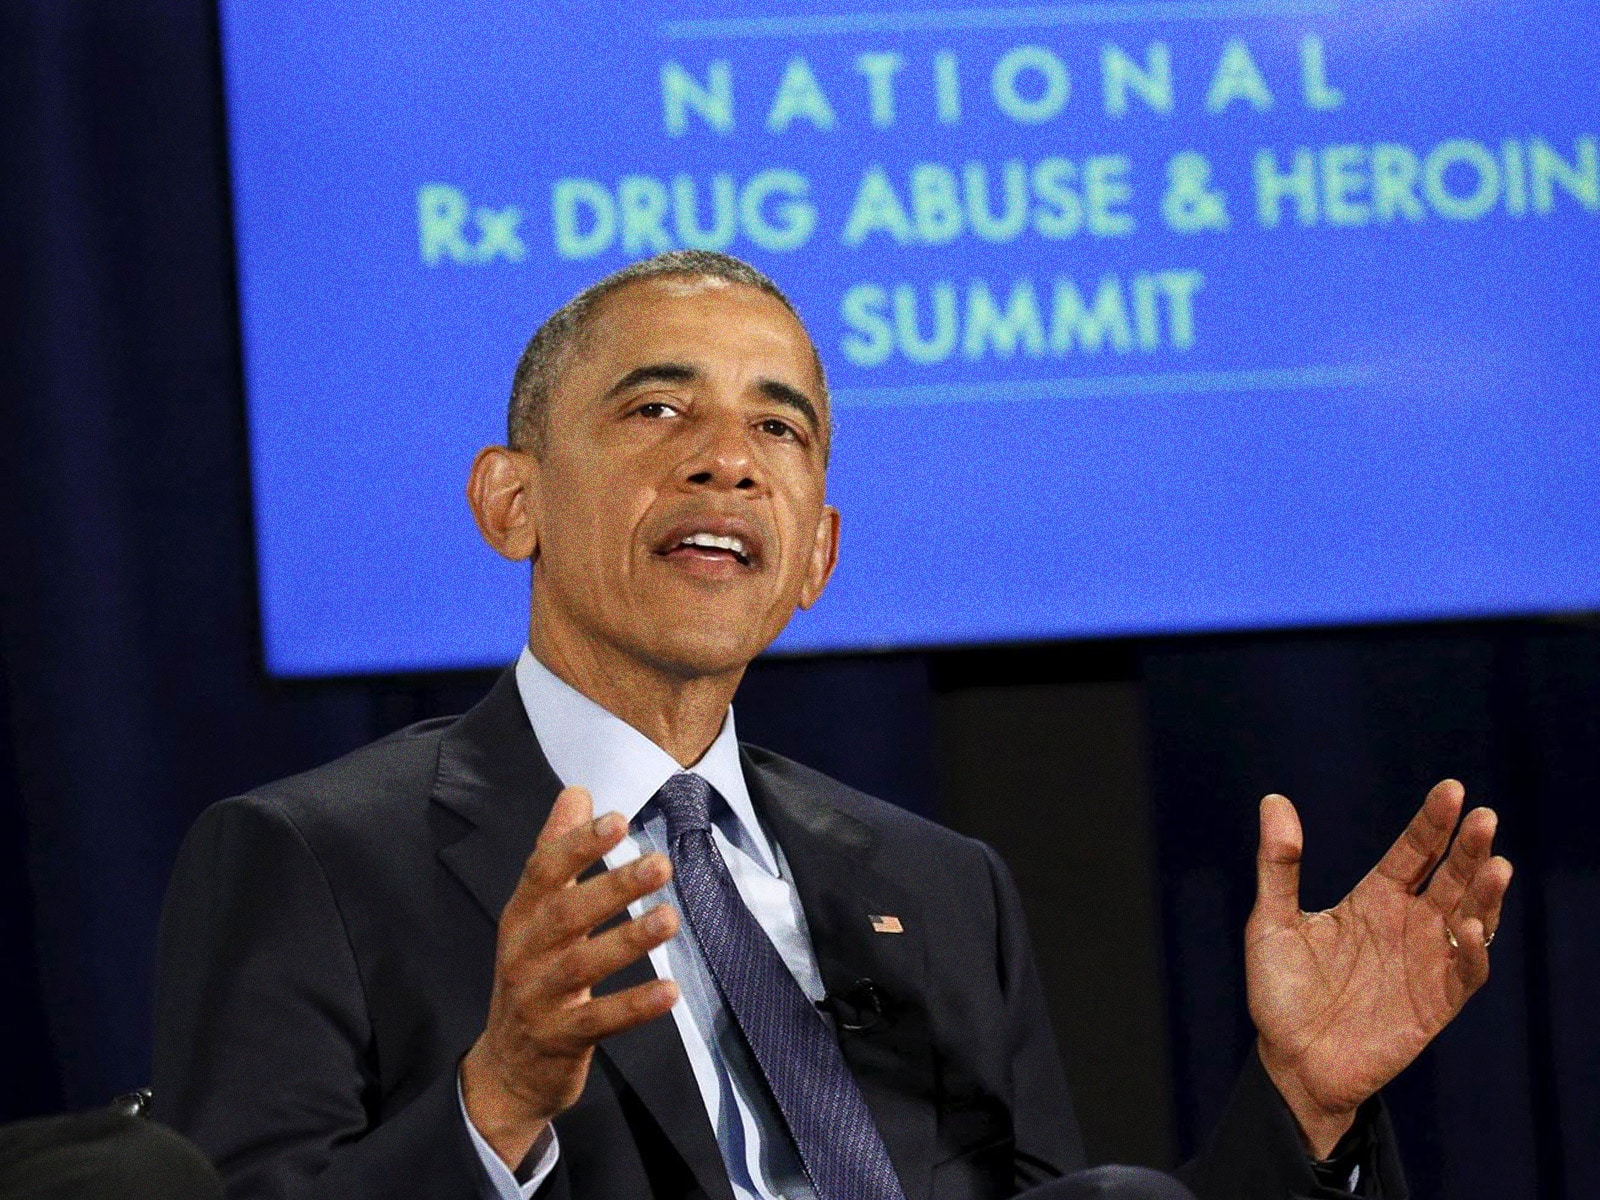 President Addresses Nation at Heroin - Freedom From Addiction